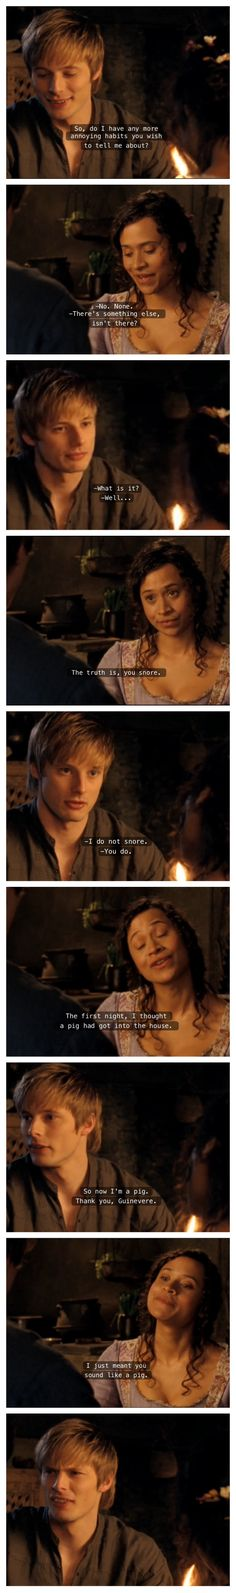 Awesome scene xD Merlin BBC Arthur and Guinevere Best Tv Shows, Best Shows Ever, Favorite Tv Shows, Smallville, Reign, Outlander, Once Upon A Time, Miss Fisher, Merlin Funny